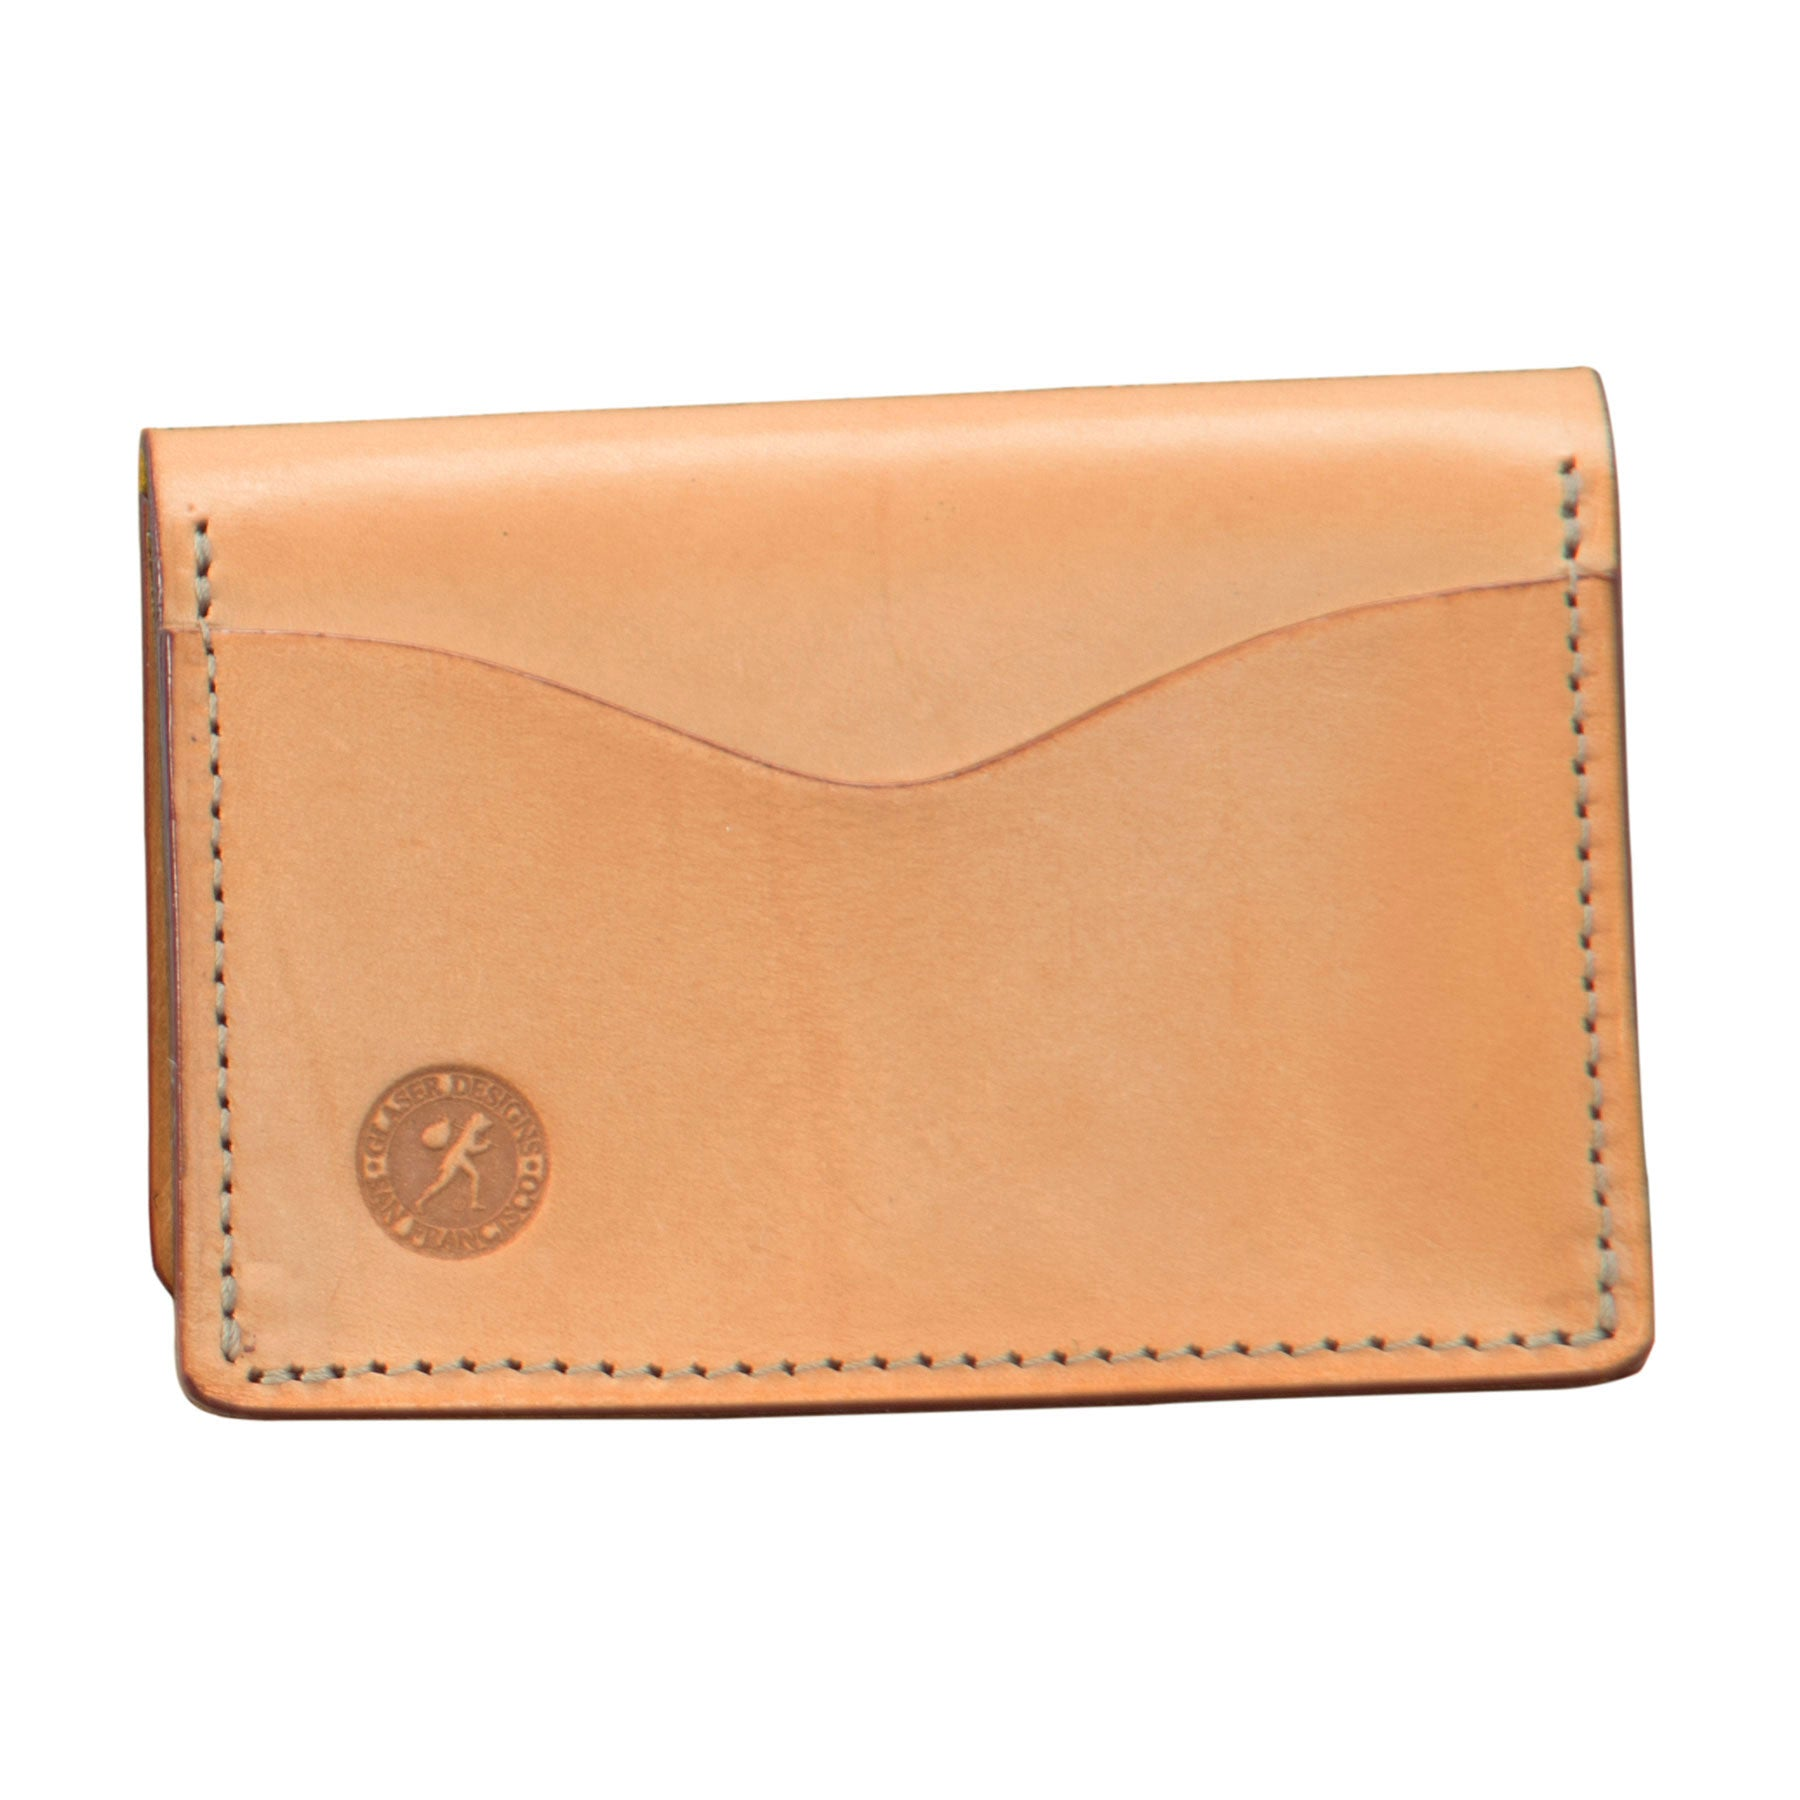 Glaser Designs Five Pocket Card Holder. Hand burnished Natural vegetable tanned leather.